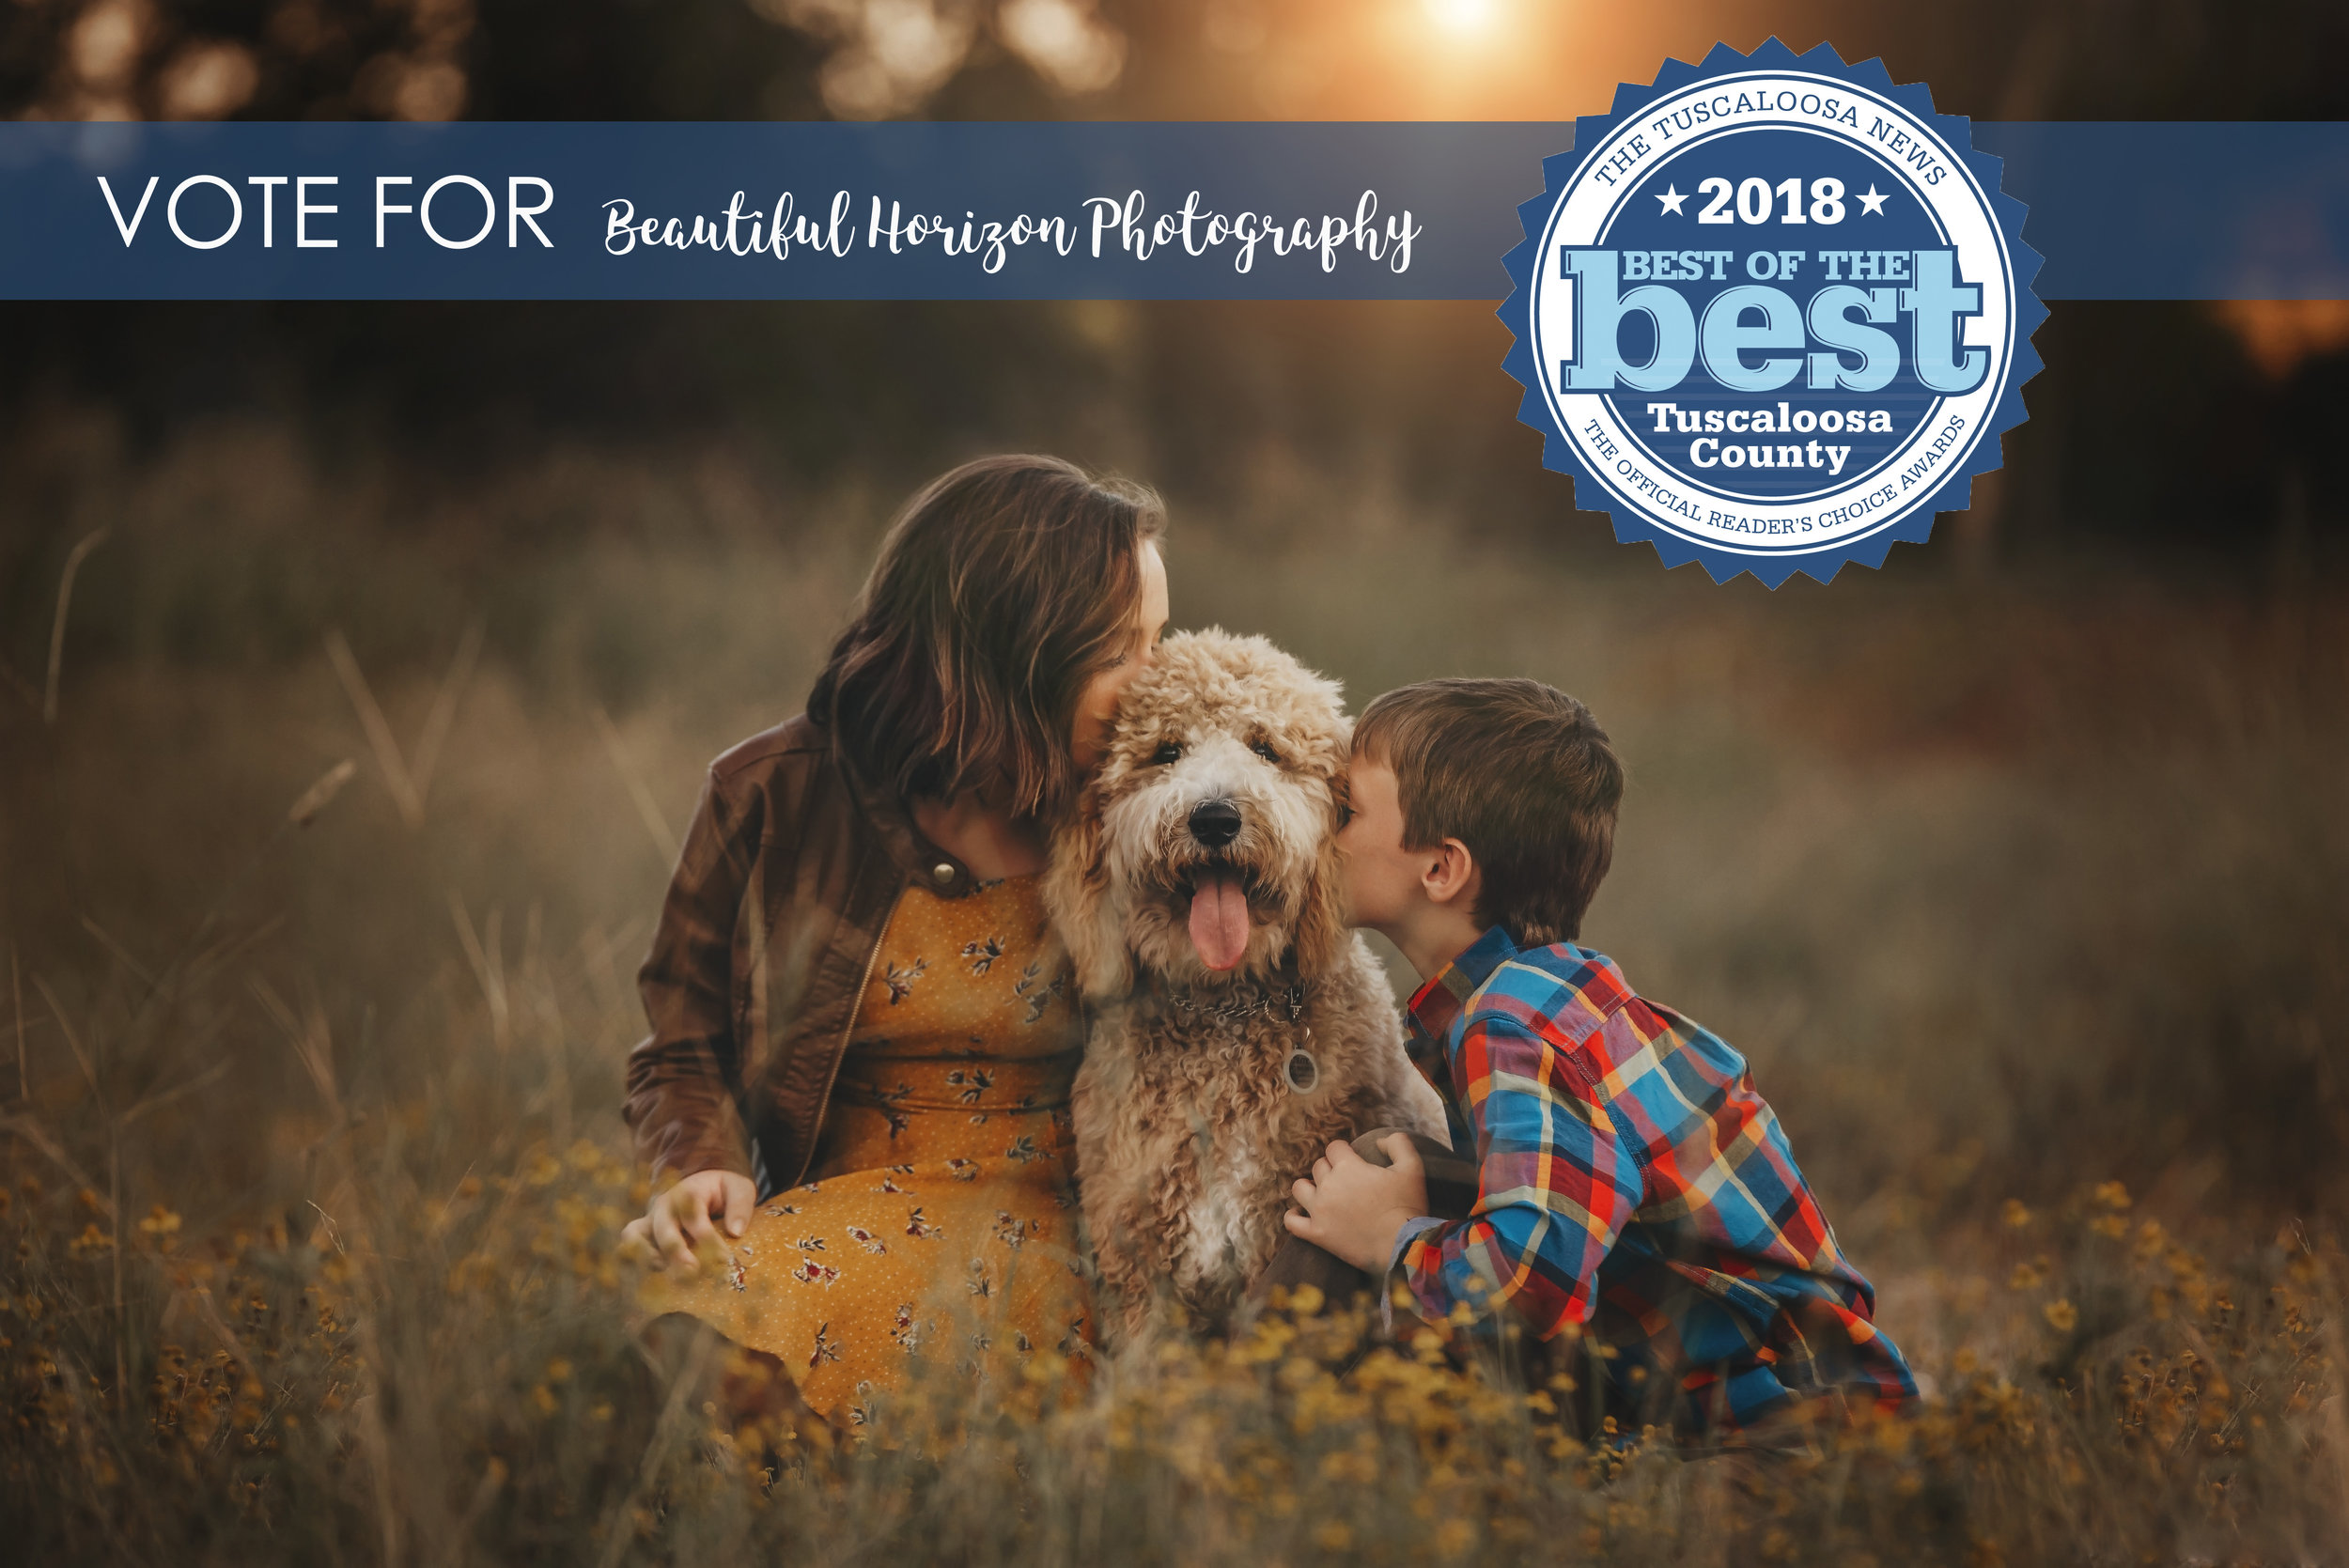 Vote Beautiful Horizon Photography for Tuscaloosa ( Tuscaloosa News) Best of the Best Photography. Tuscaloosa AL Photographer. Photographer in Tuscaloosa AL.